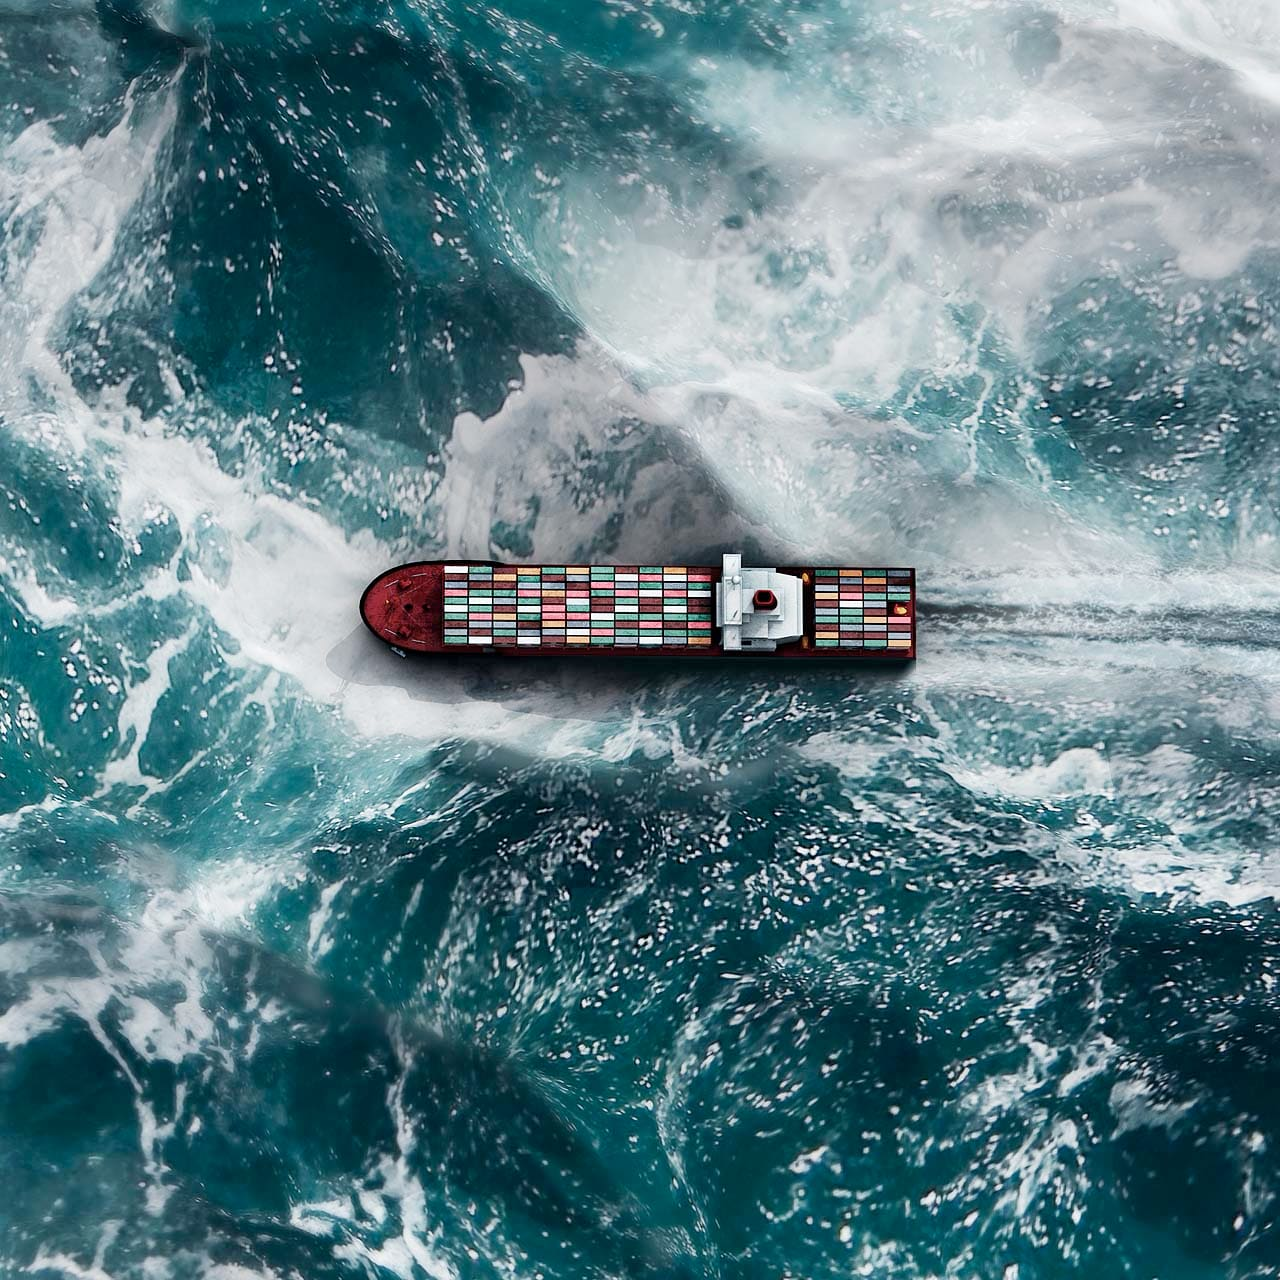 aerial shot of a barge afloat on a sea of crashing waves